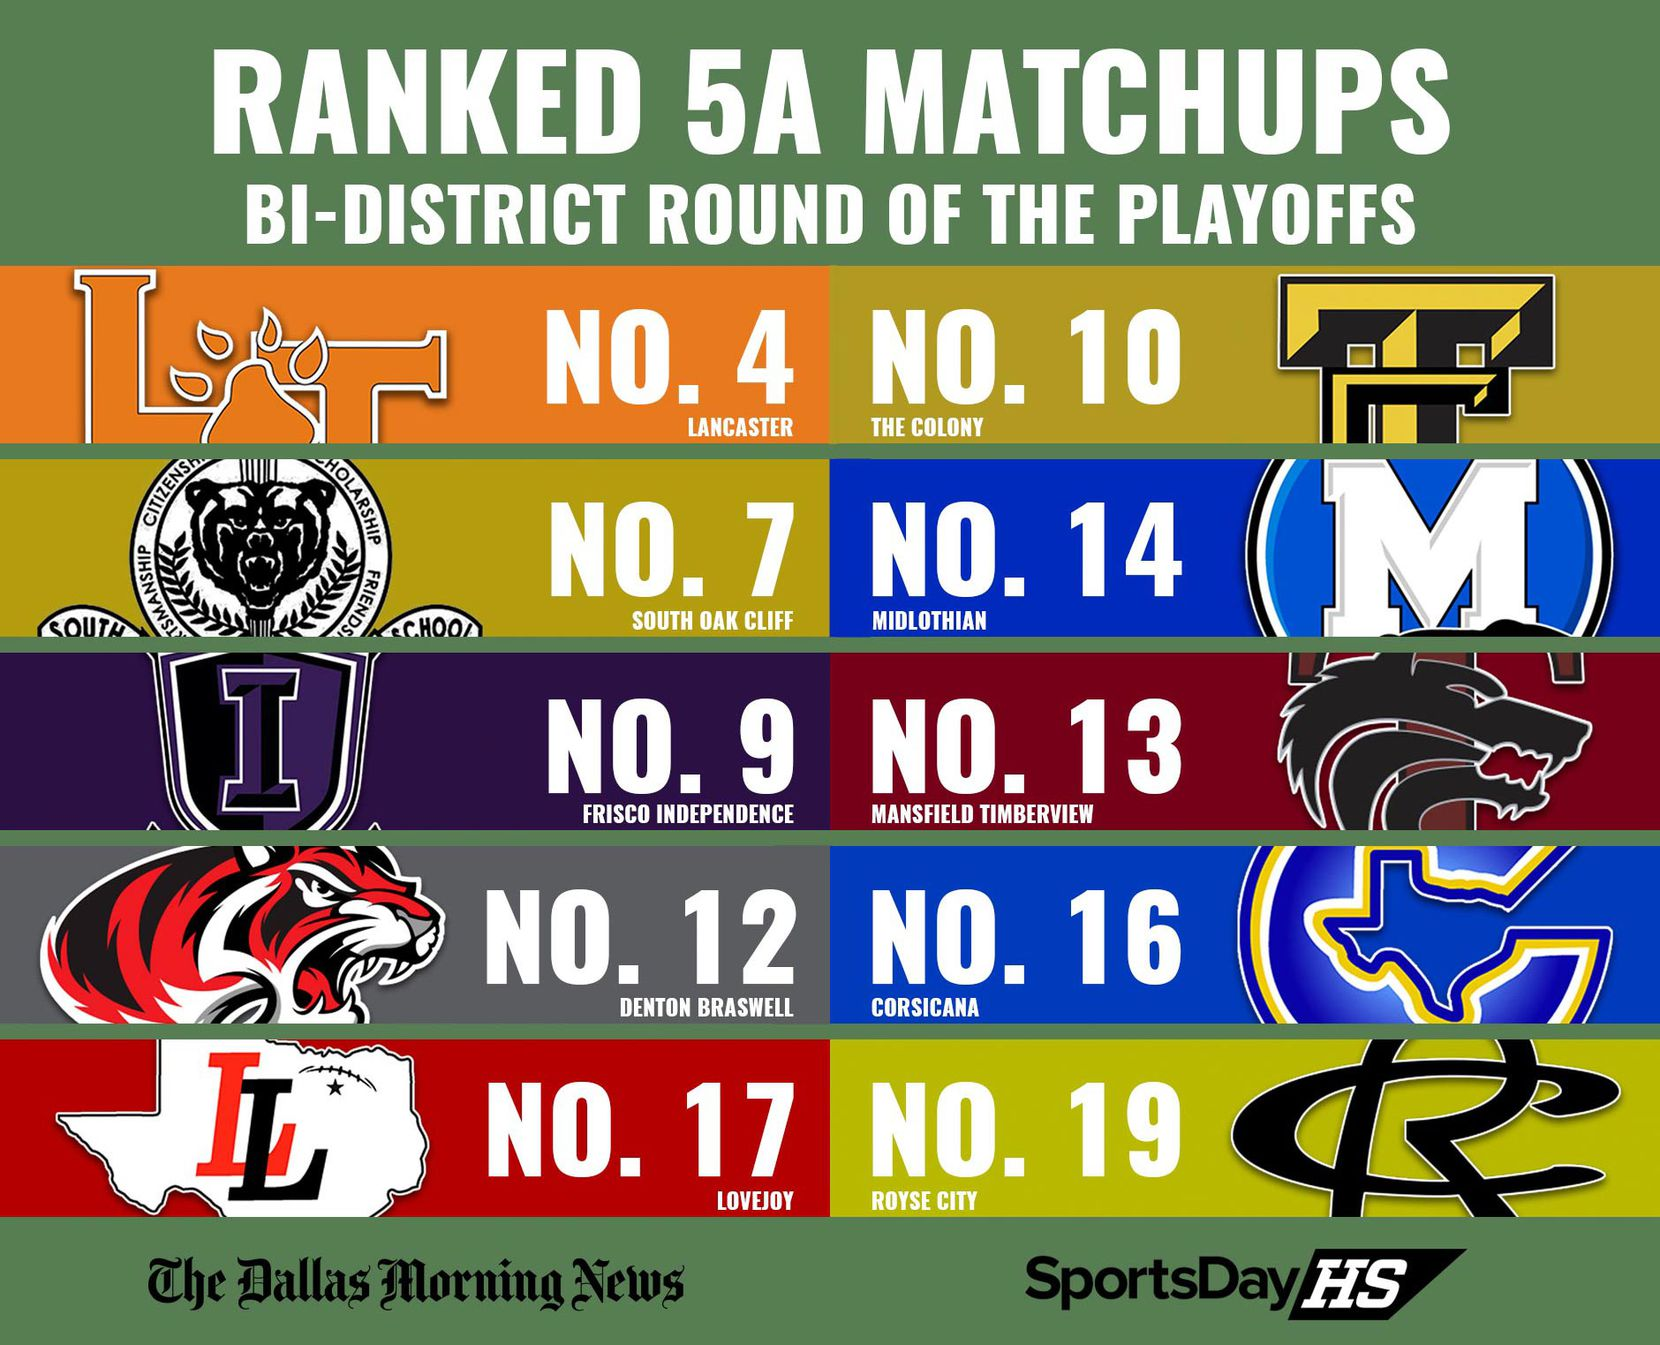 Ranked 5A matchups in the bi-district round of the playoffs.